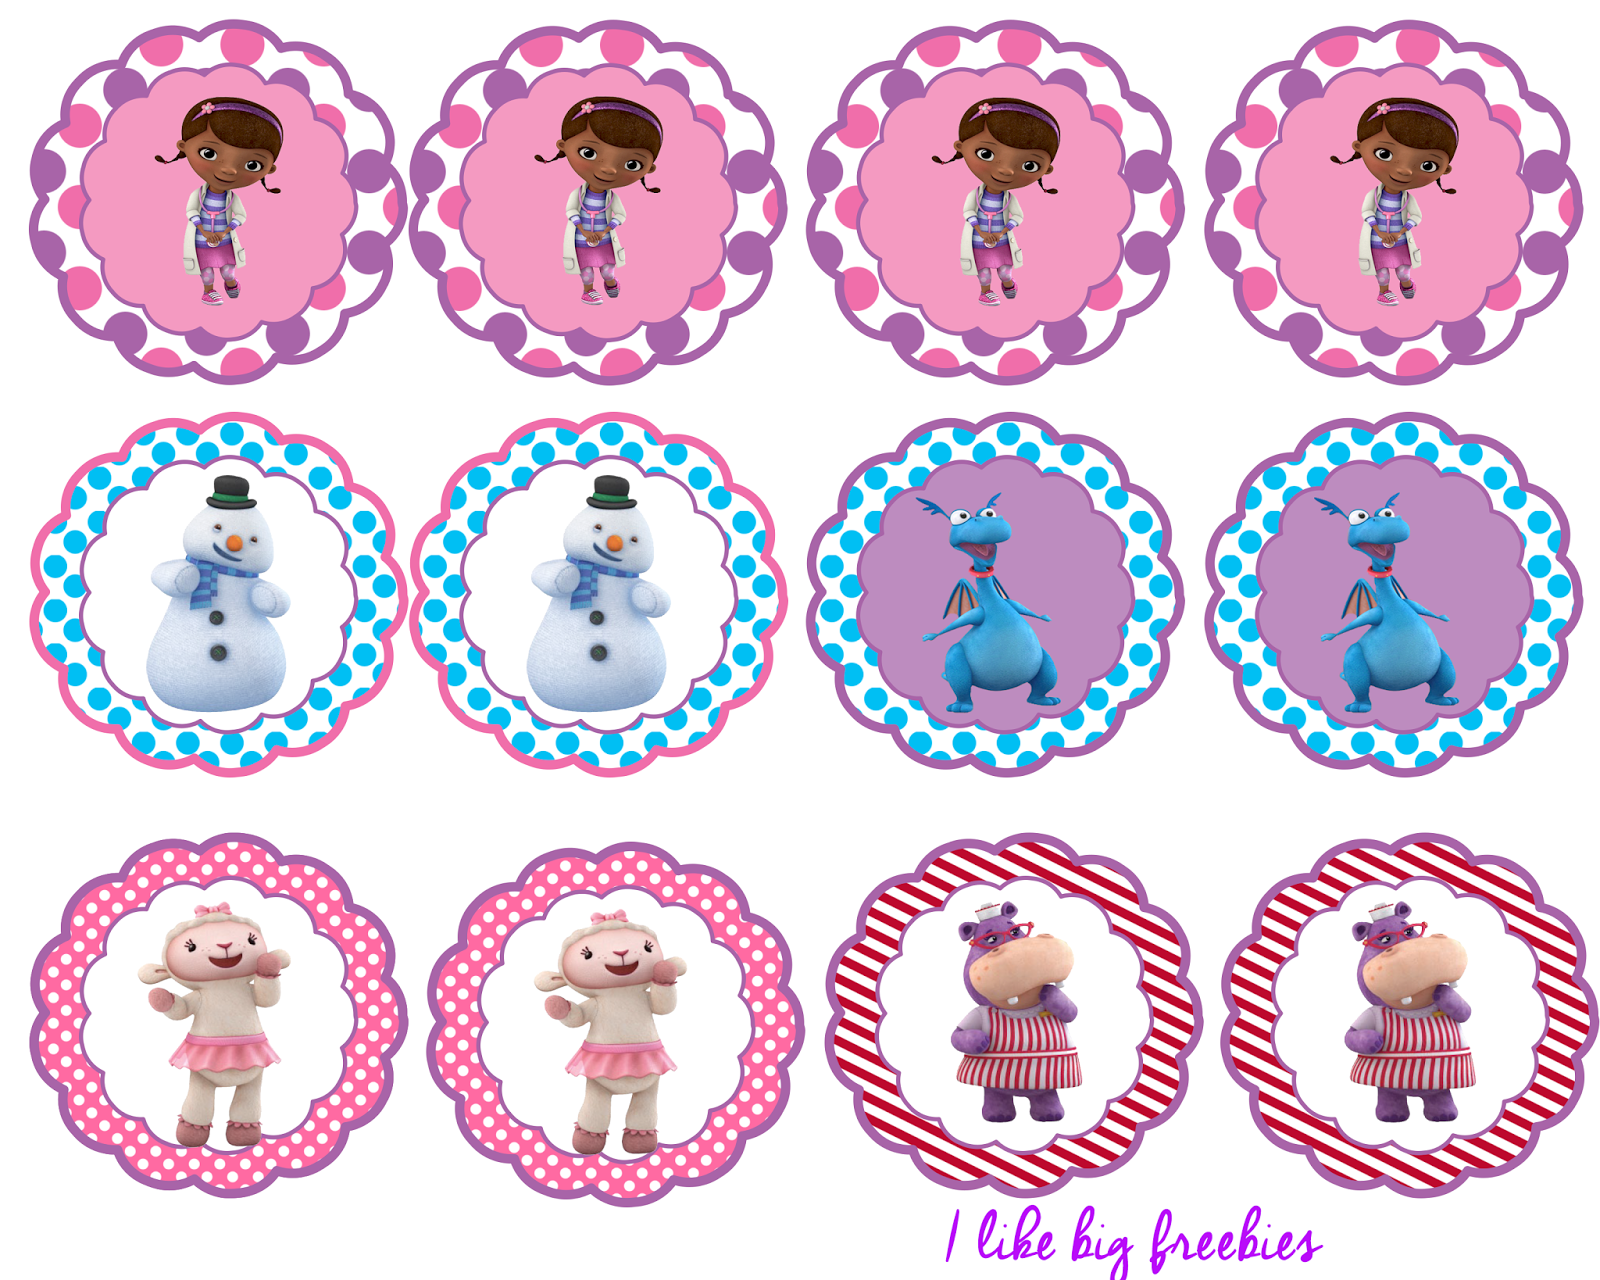 Doc mcstuffins printable clipart graphic library 1000+ images about Doctora Juguetes on Pinterest | Doc McStuffins ... graphic library